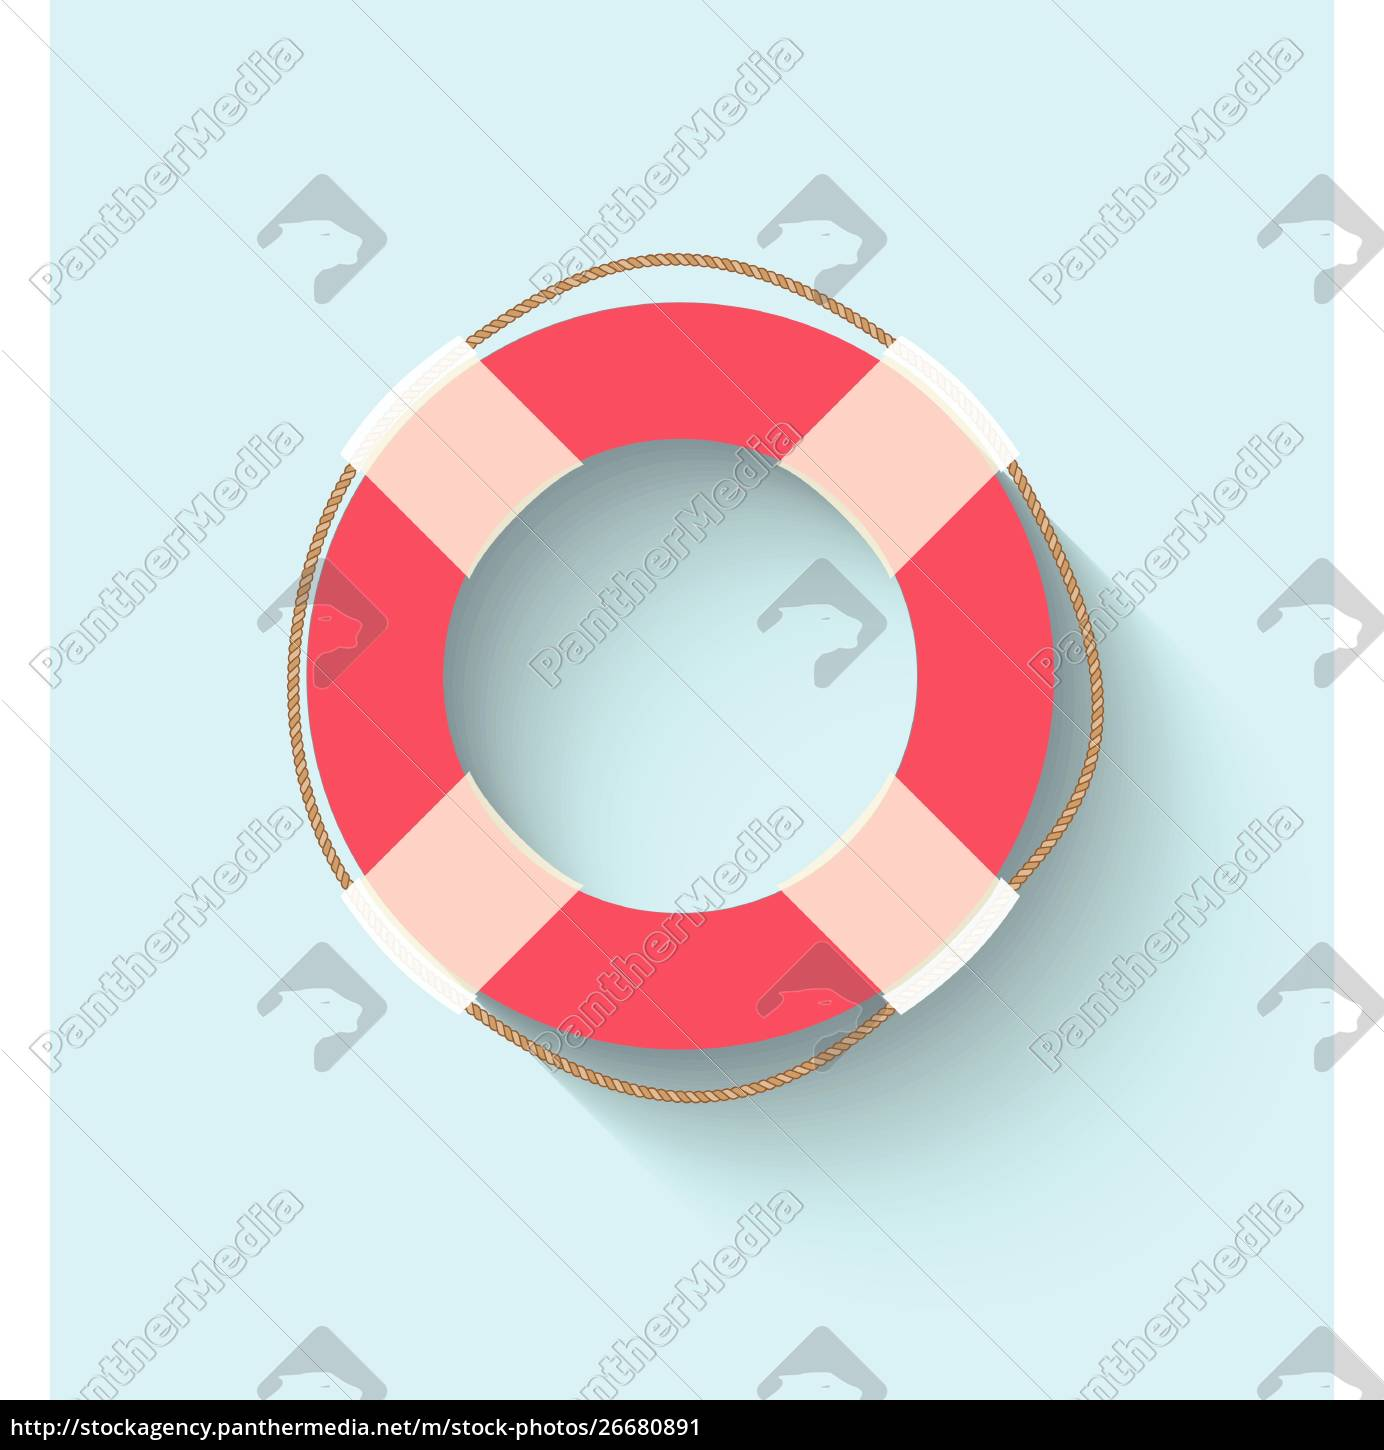 life, buoy, in, flat, style - 26680891